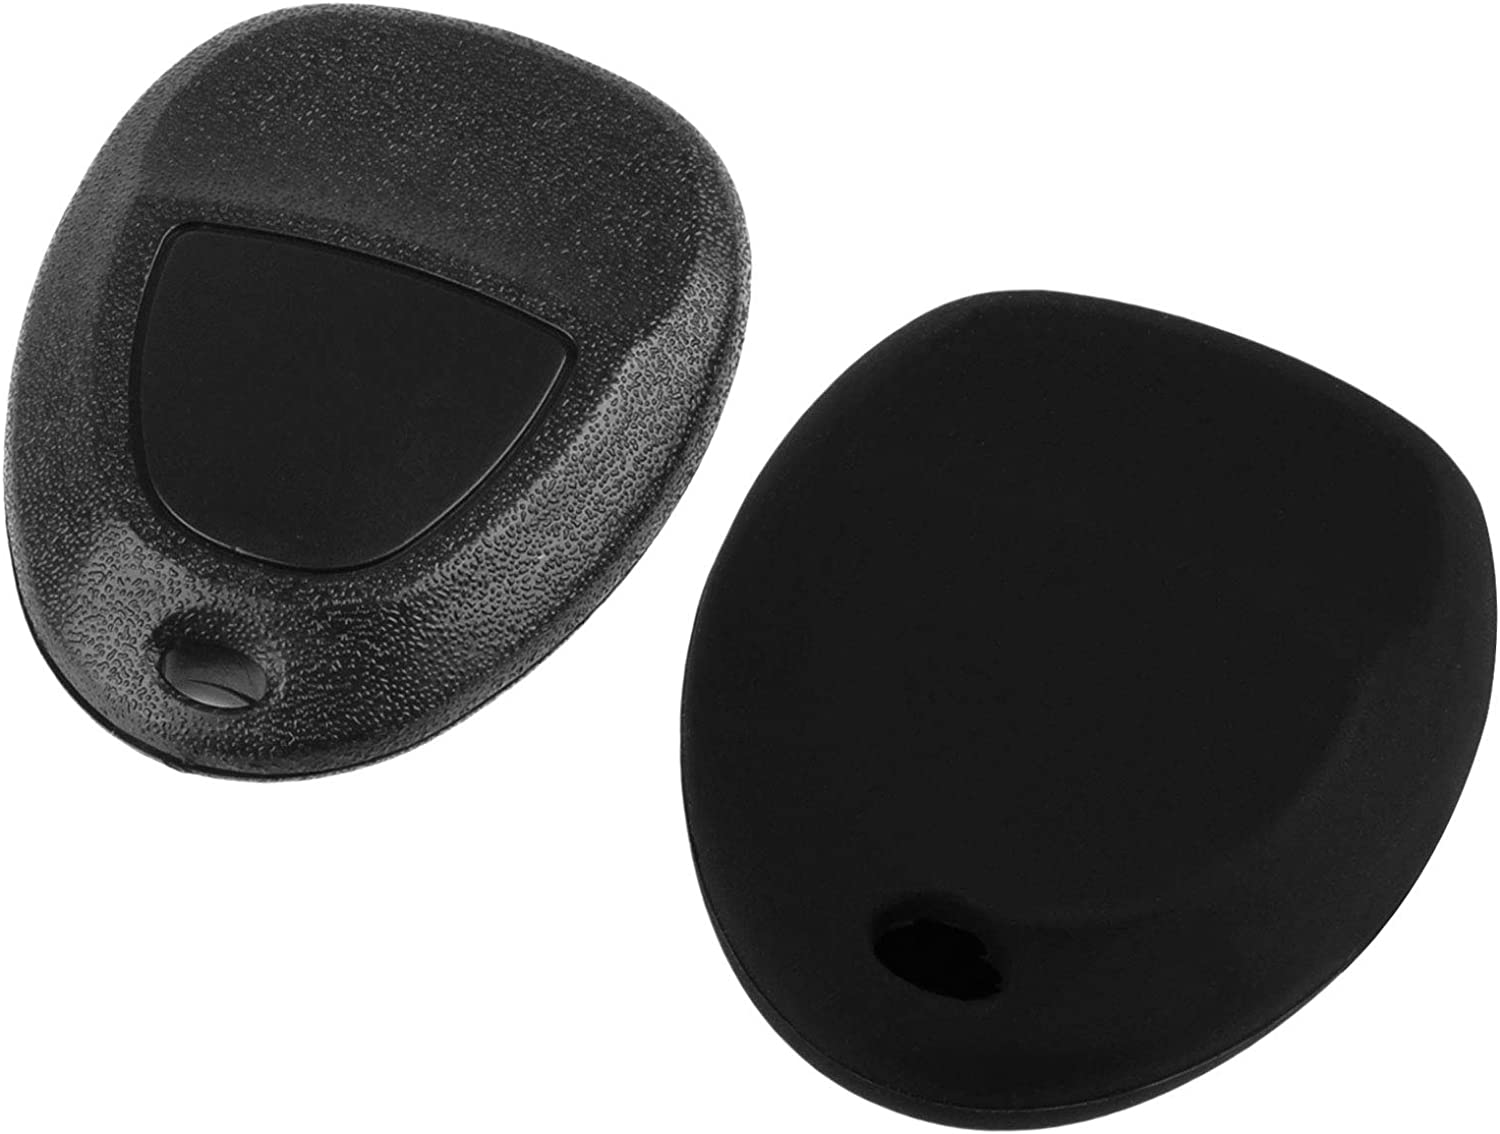 22733524 Protective Cover Key Fob Keyless Remote fits Buick Chevy Pontiac Saturn